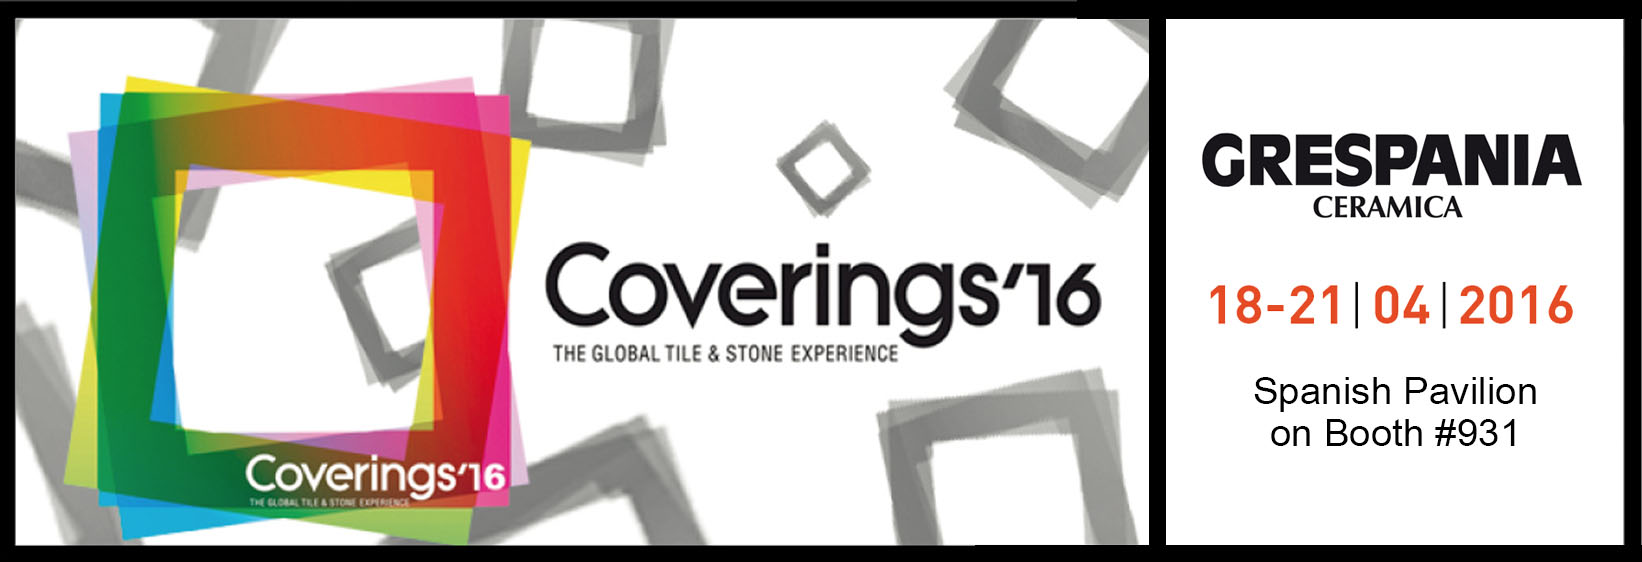 COVERINGS 2016